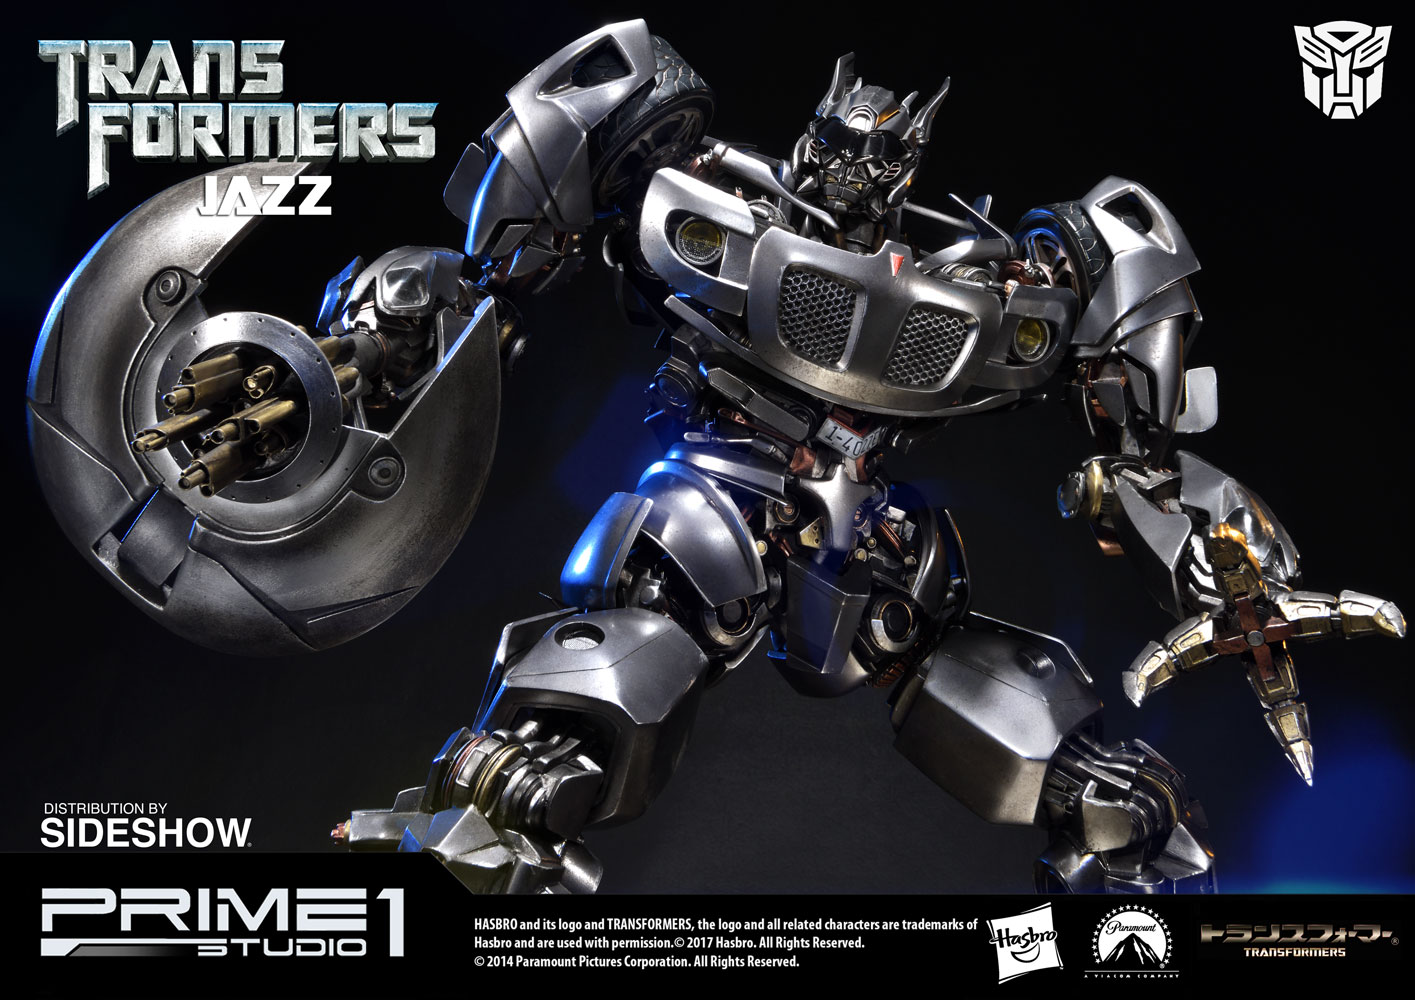 transformers jazz statueprime 1 studio | sideshow collectibles